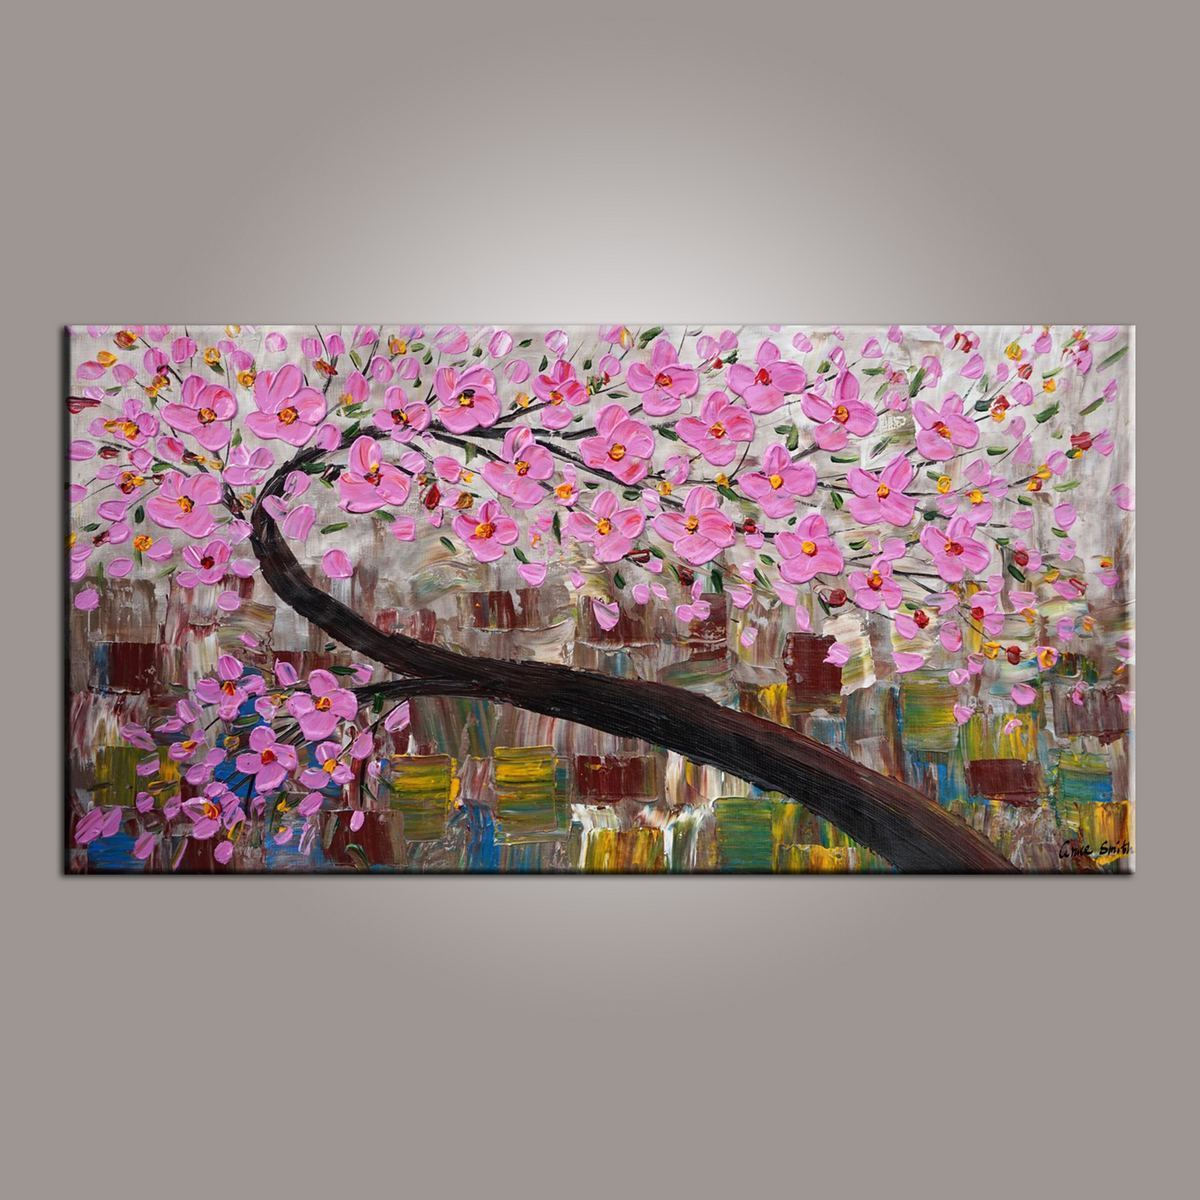 Canvas Art, Flower Tree Painting, Abstract Art Painting, Painting on Sale, Dining Room Wall Art, Art on Canvas, Modern Art, Contemporary Art - artworkcanvas